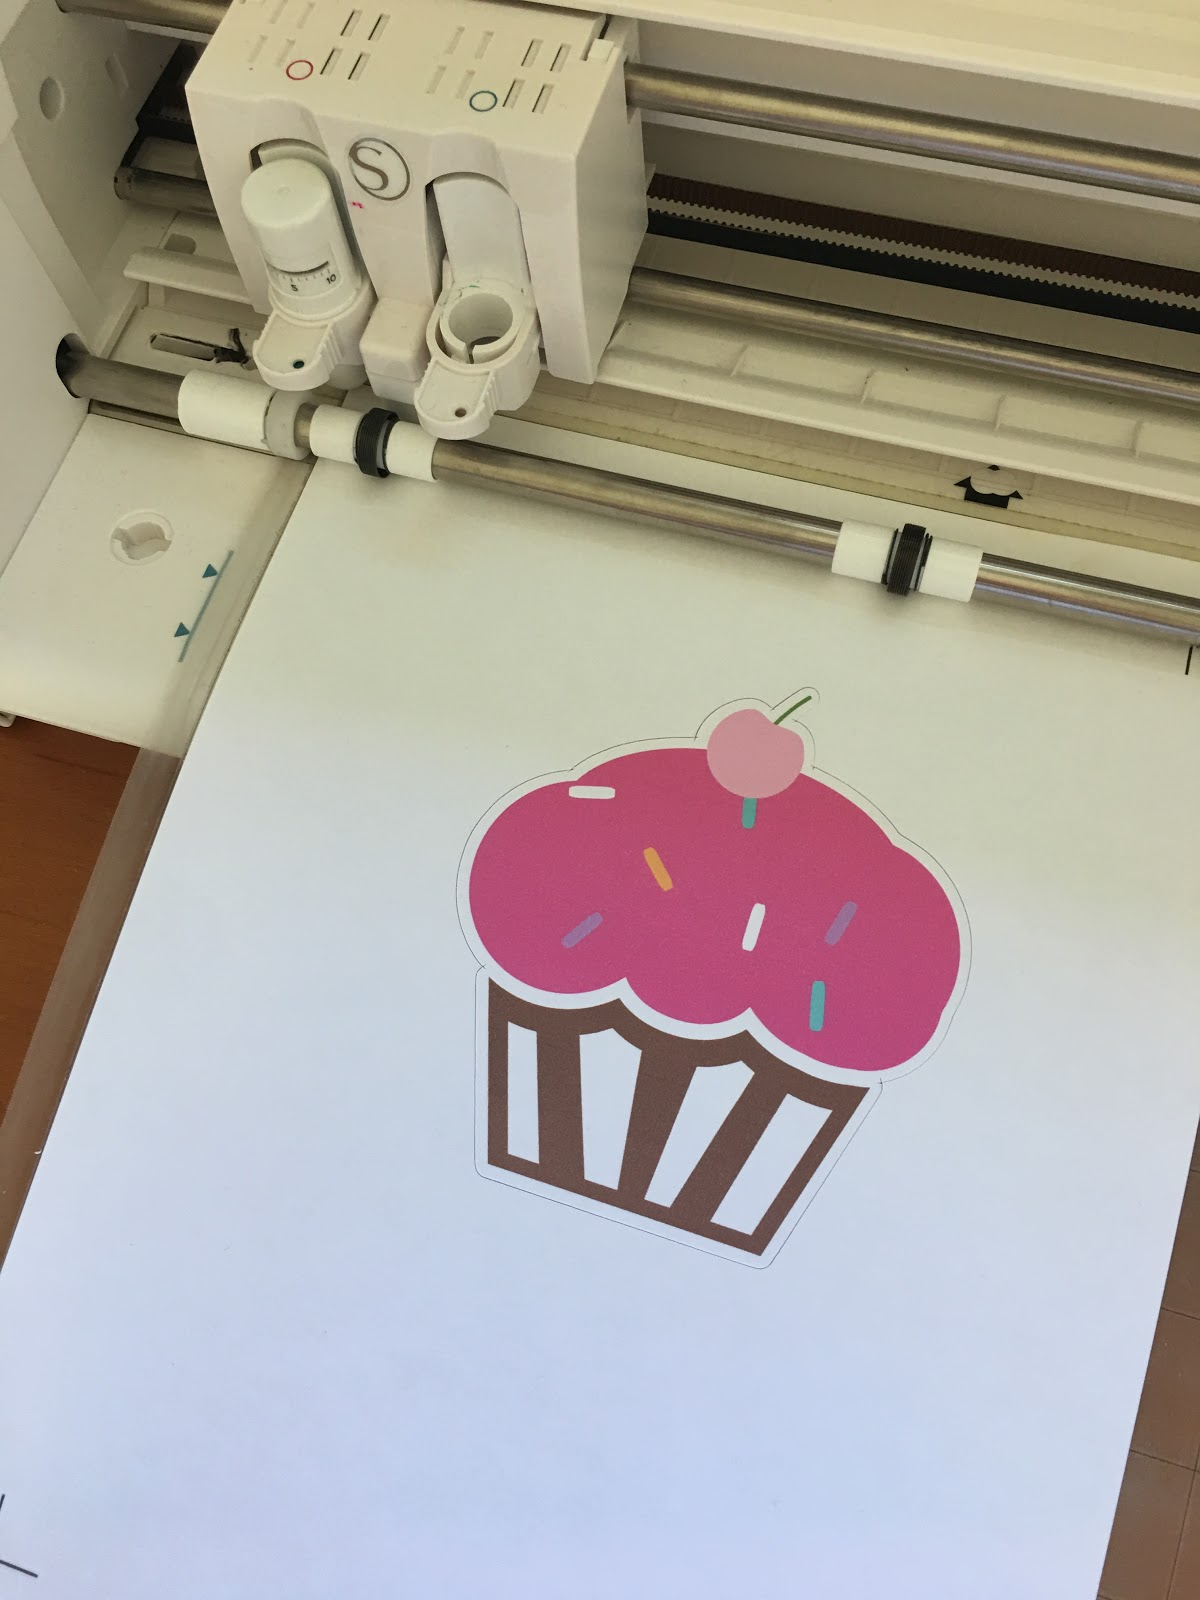 Beginner Silhouette Print And Cut Tutorial For V4 (Free